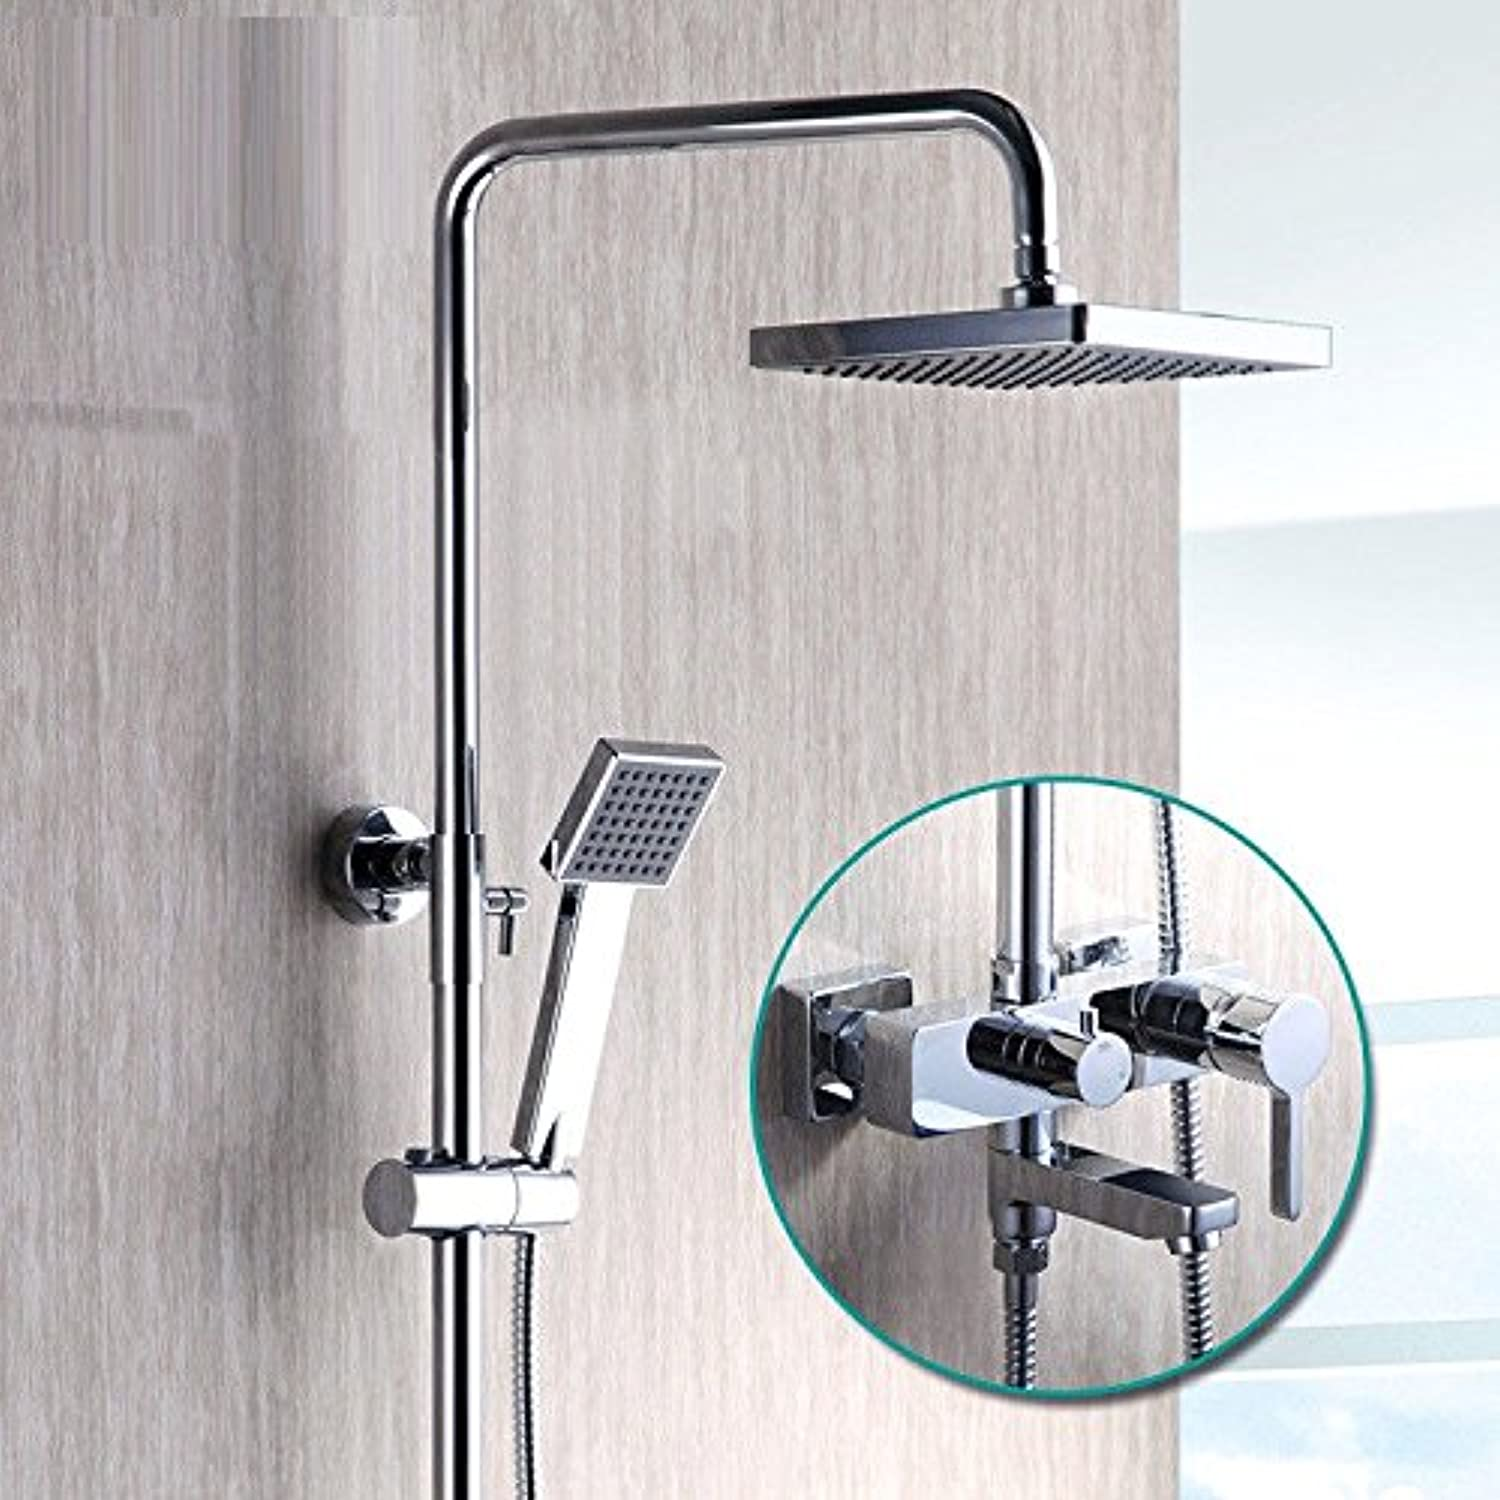 Gyps Faucet Basin Mixer Tap Waterfall Faucet Antique Bathroom Mixer Bar Mixer Shower Set Tap antique bathroom faucet Shower faucets packaged full copper heated-Booster bath shower kit to lift the hot